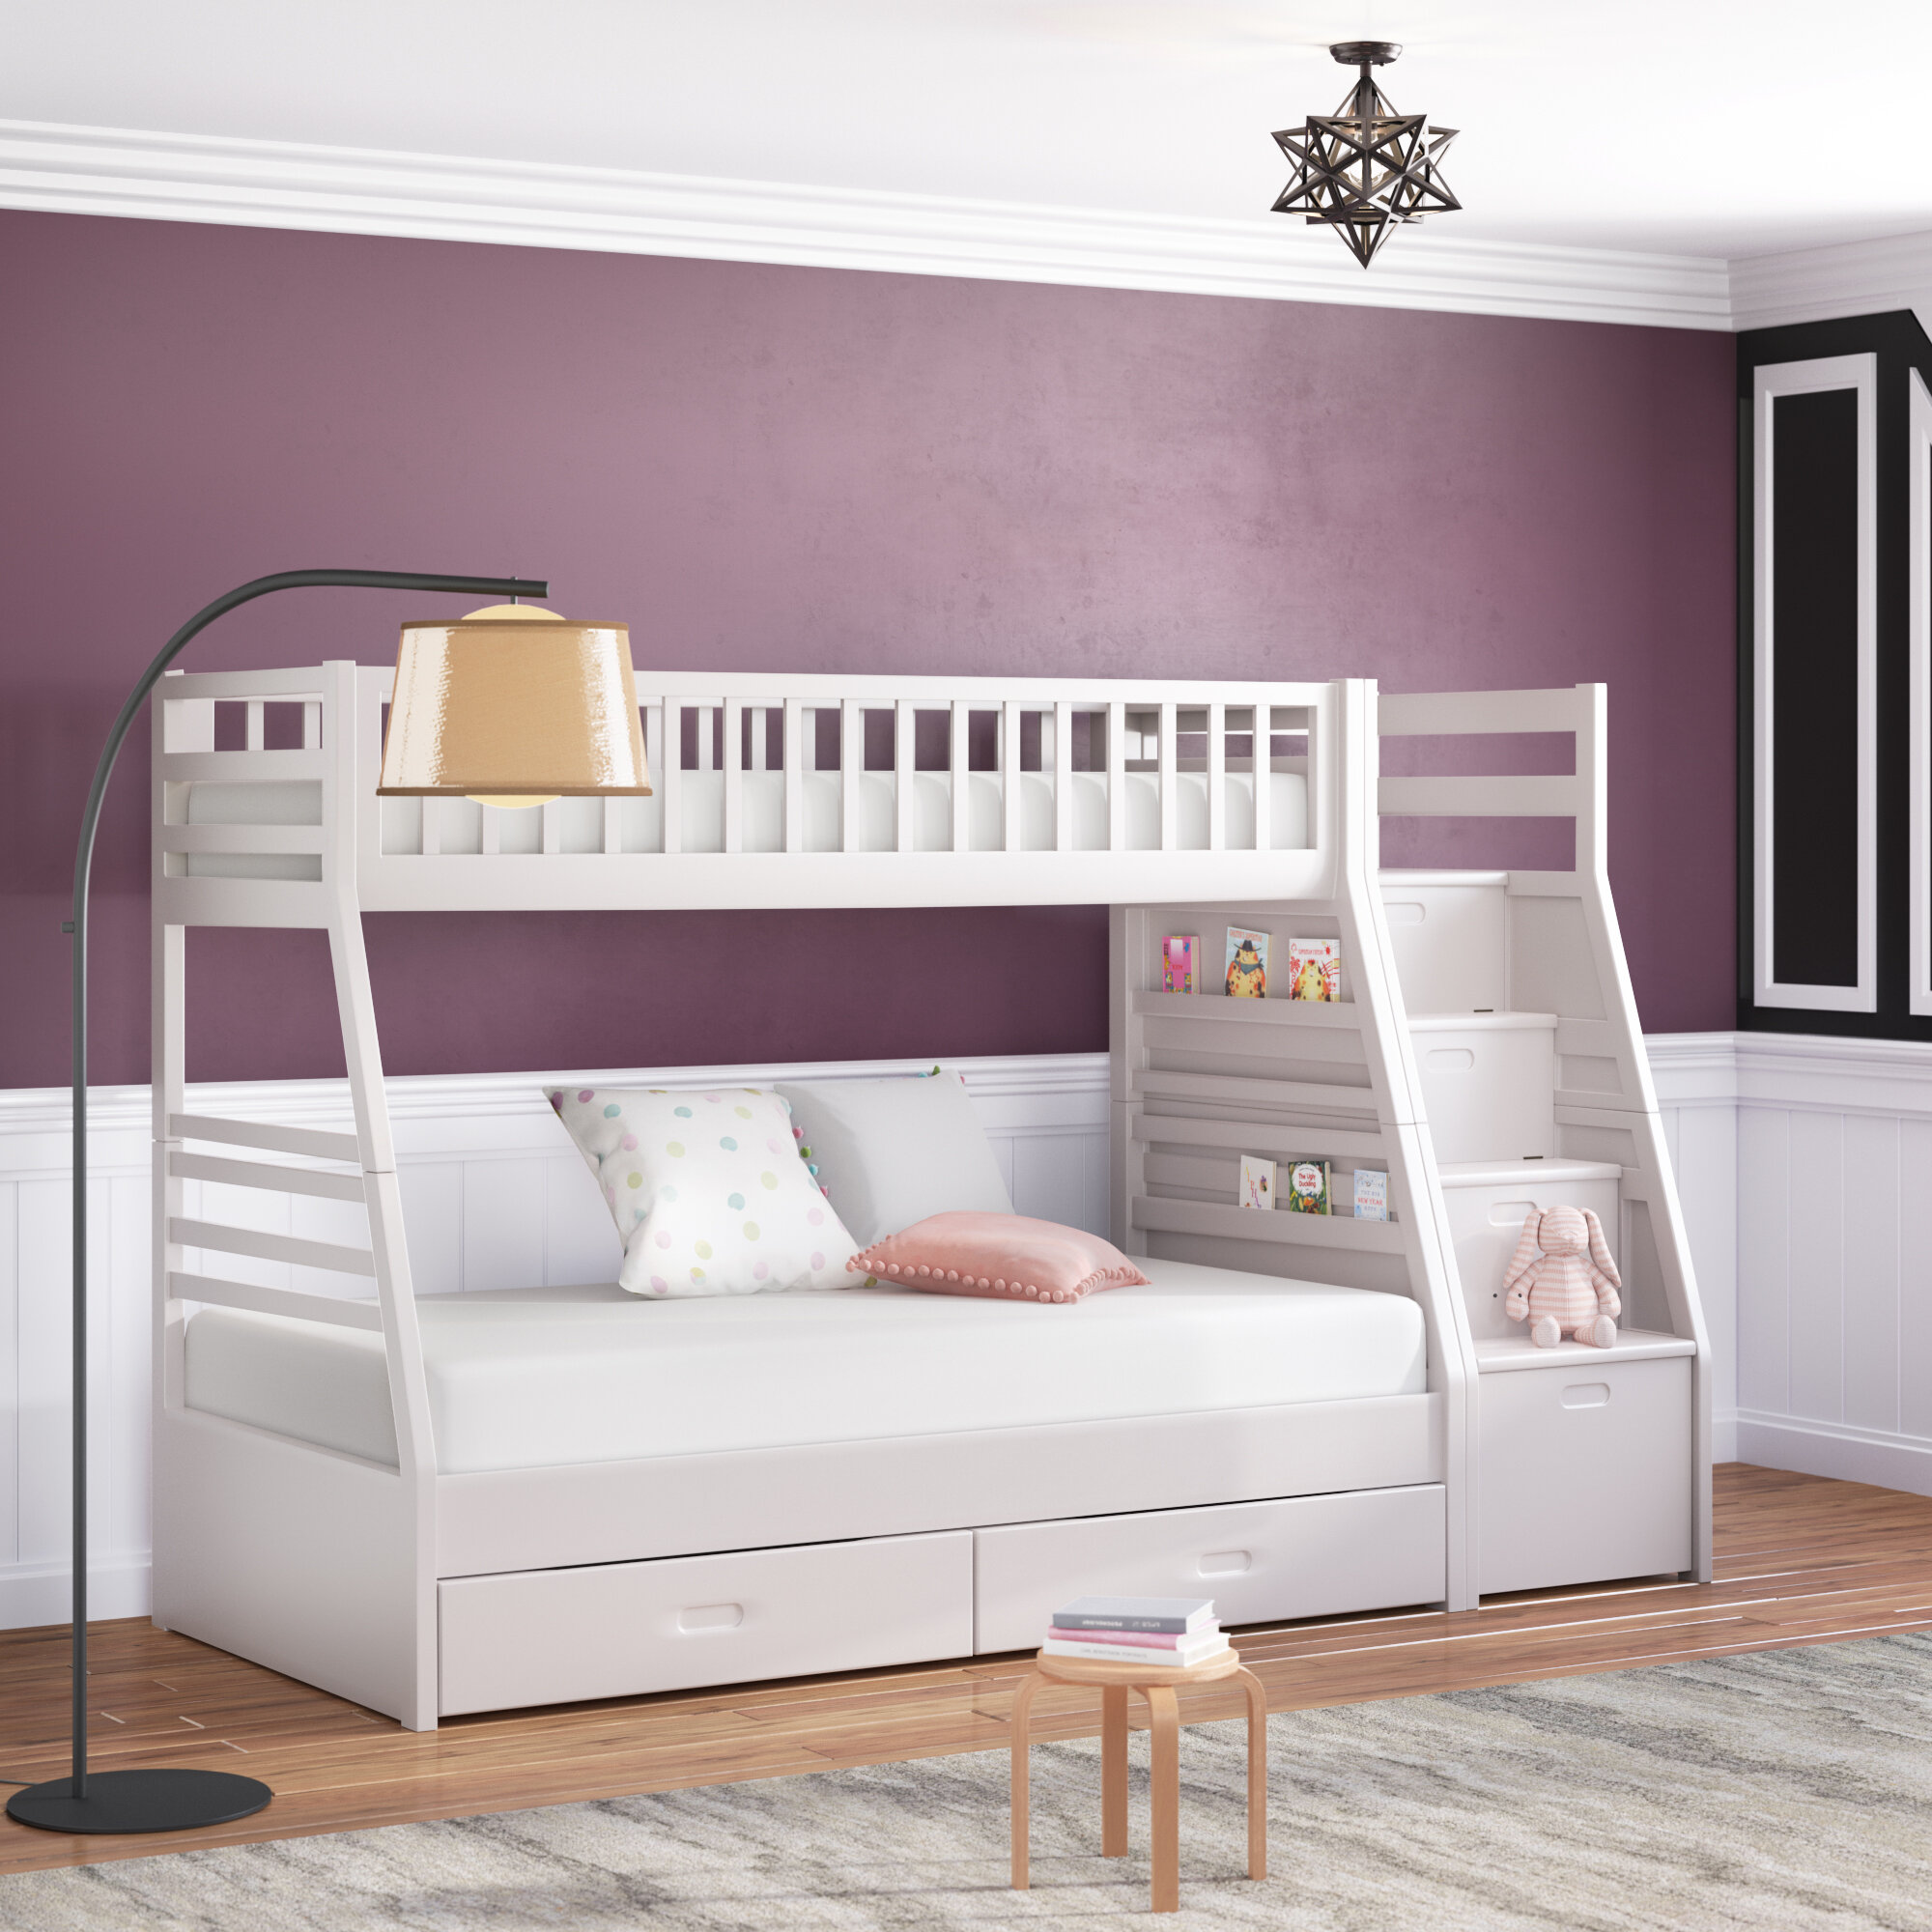 huge discount db15a ef6f8 Pierre Twin Over Full Bunk Bed with Drawers